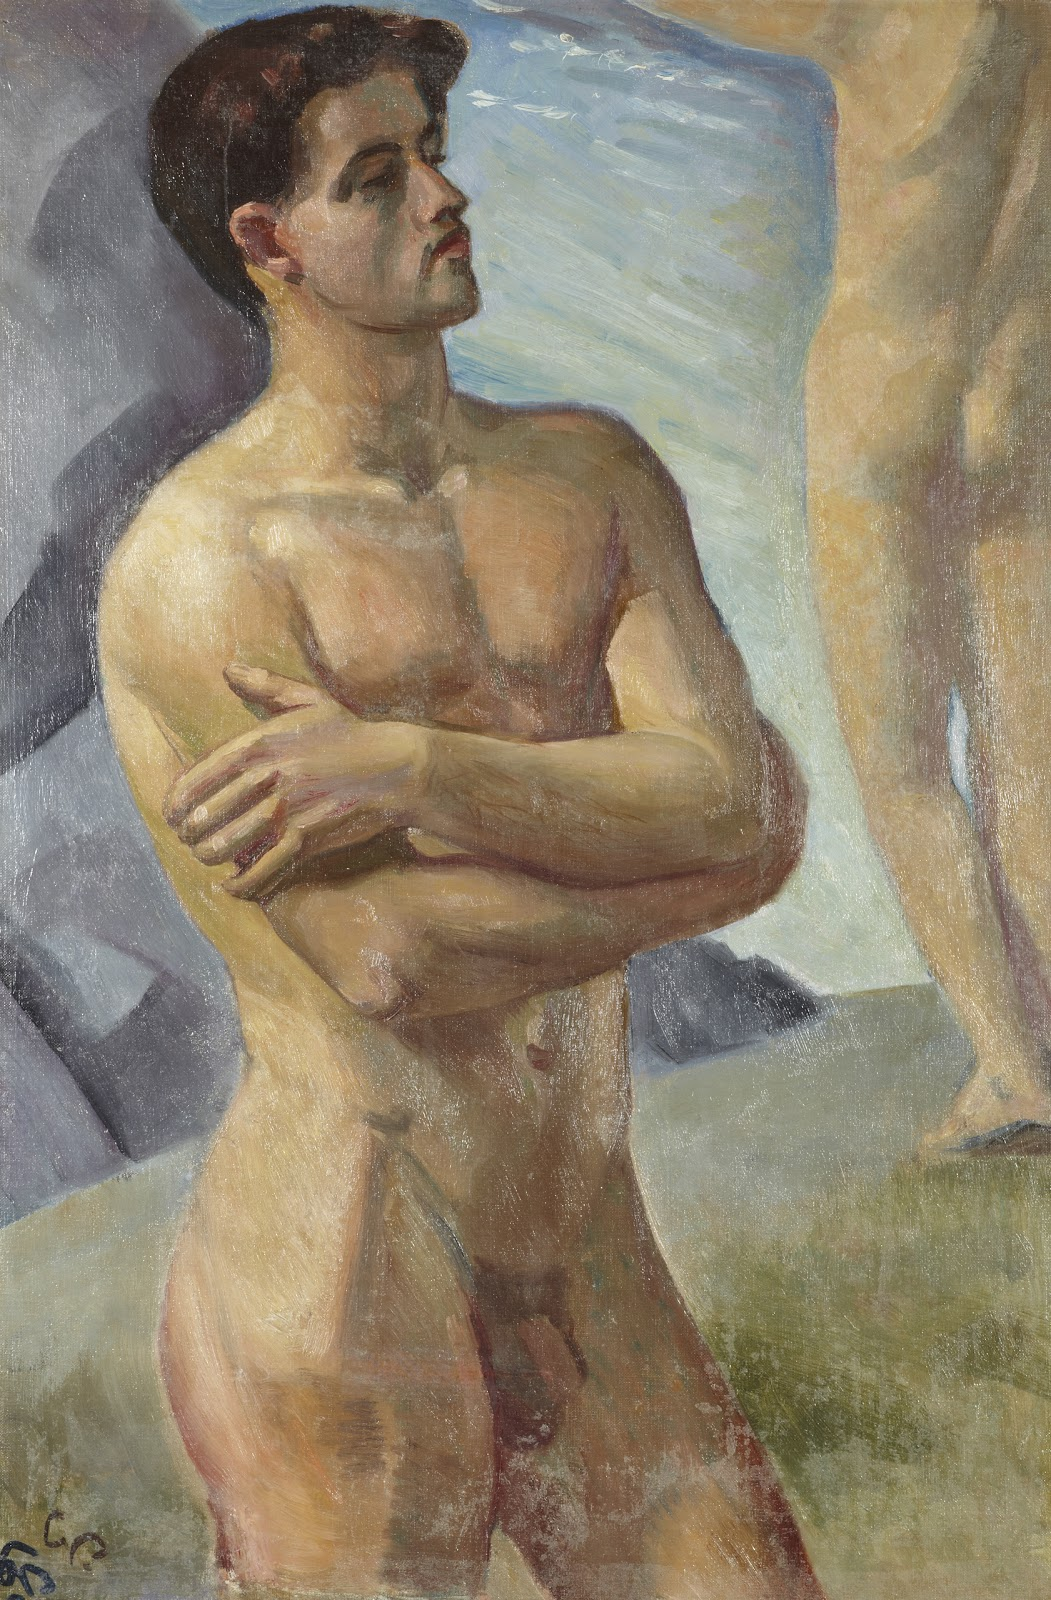 from Paxton nude men n women paintings